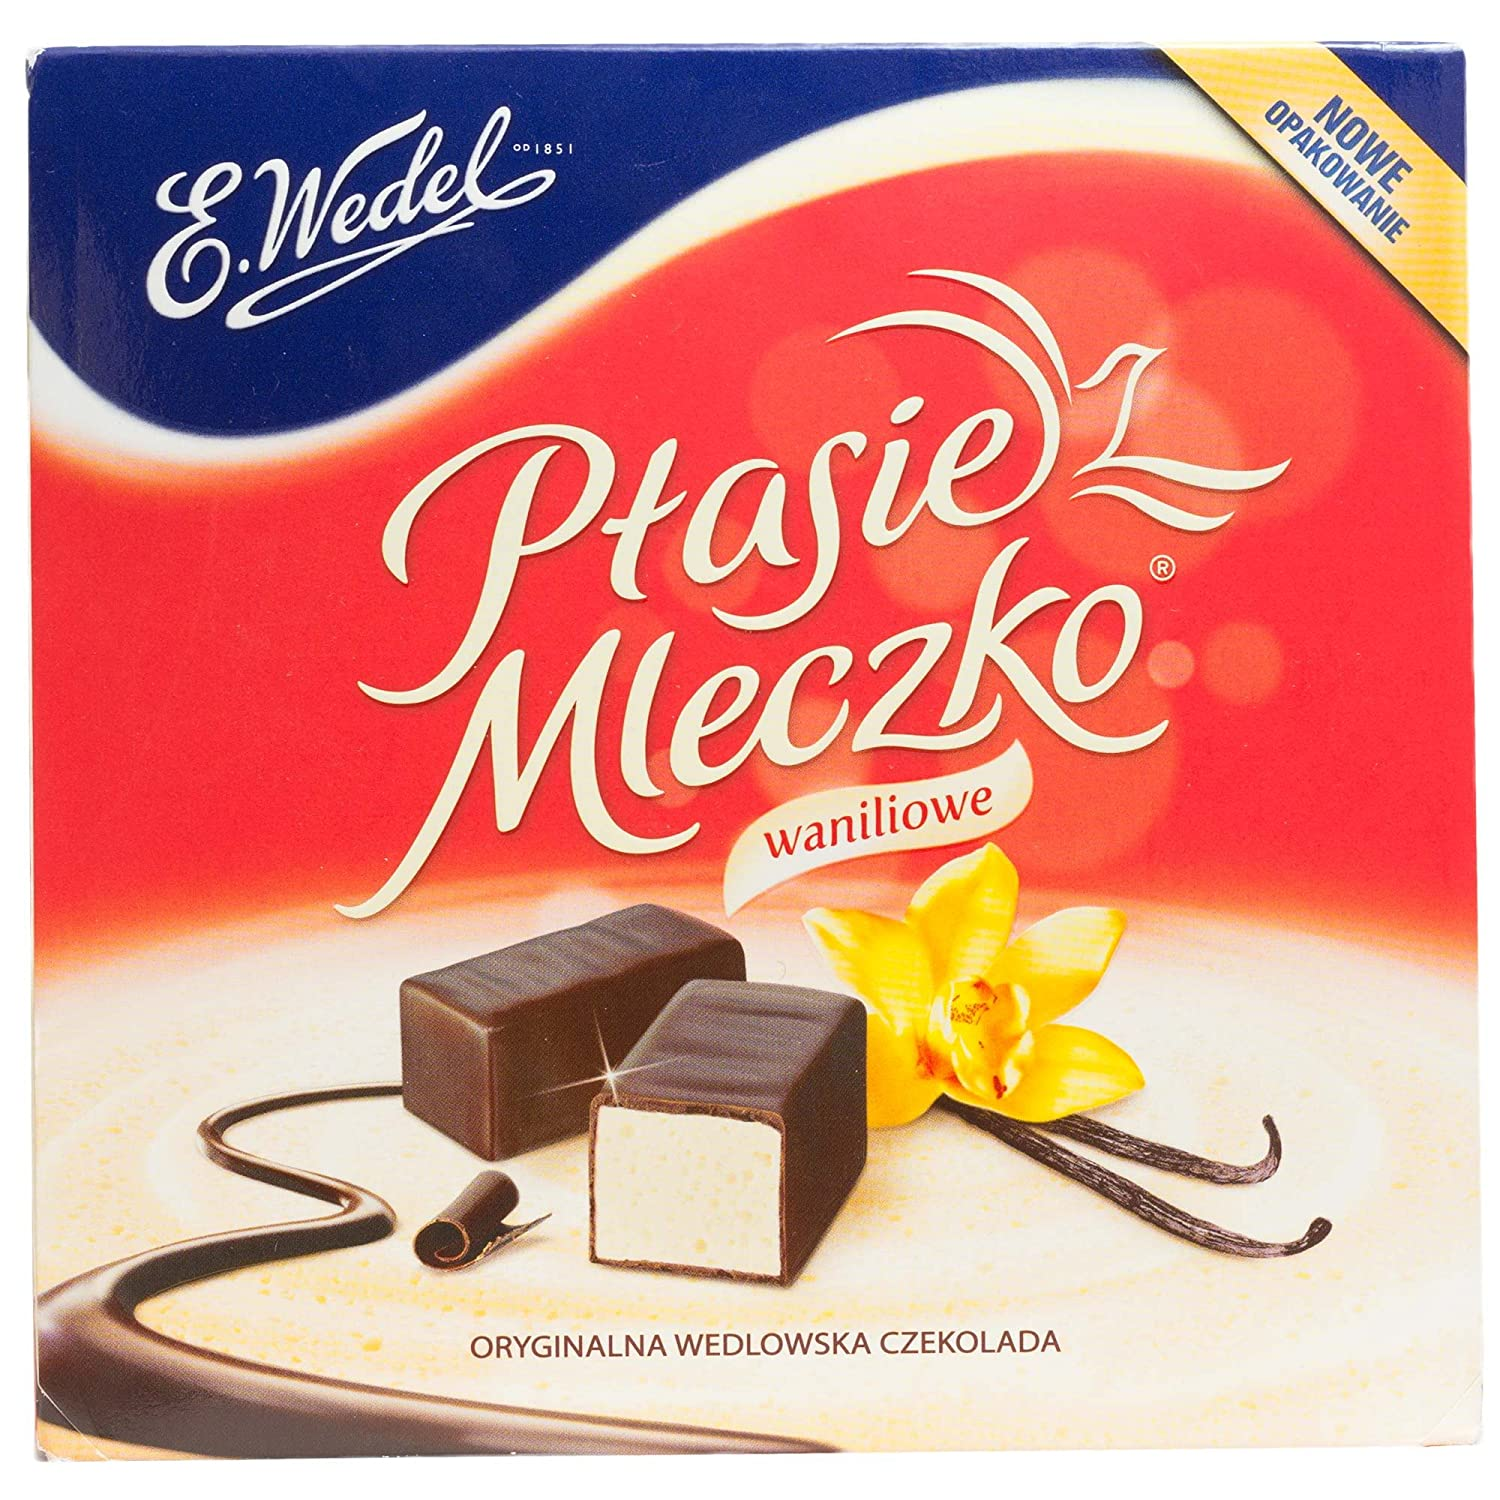 Ptasie Mleczko Chocolate Covered Vanilla Marshmallow (birds milk chocolate), 13.4 Oz. Wedel